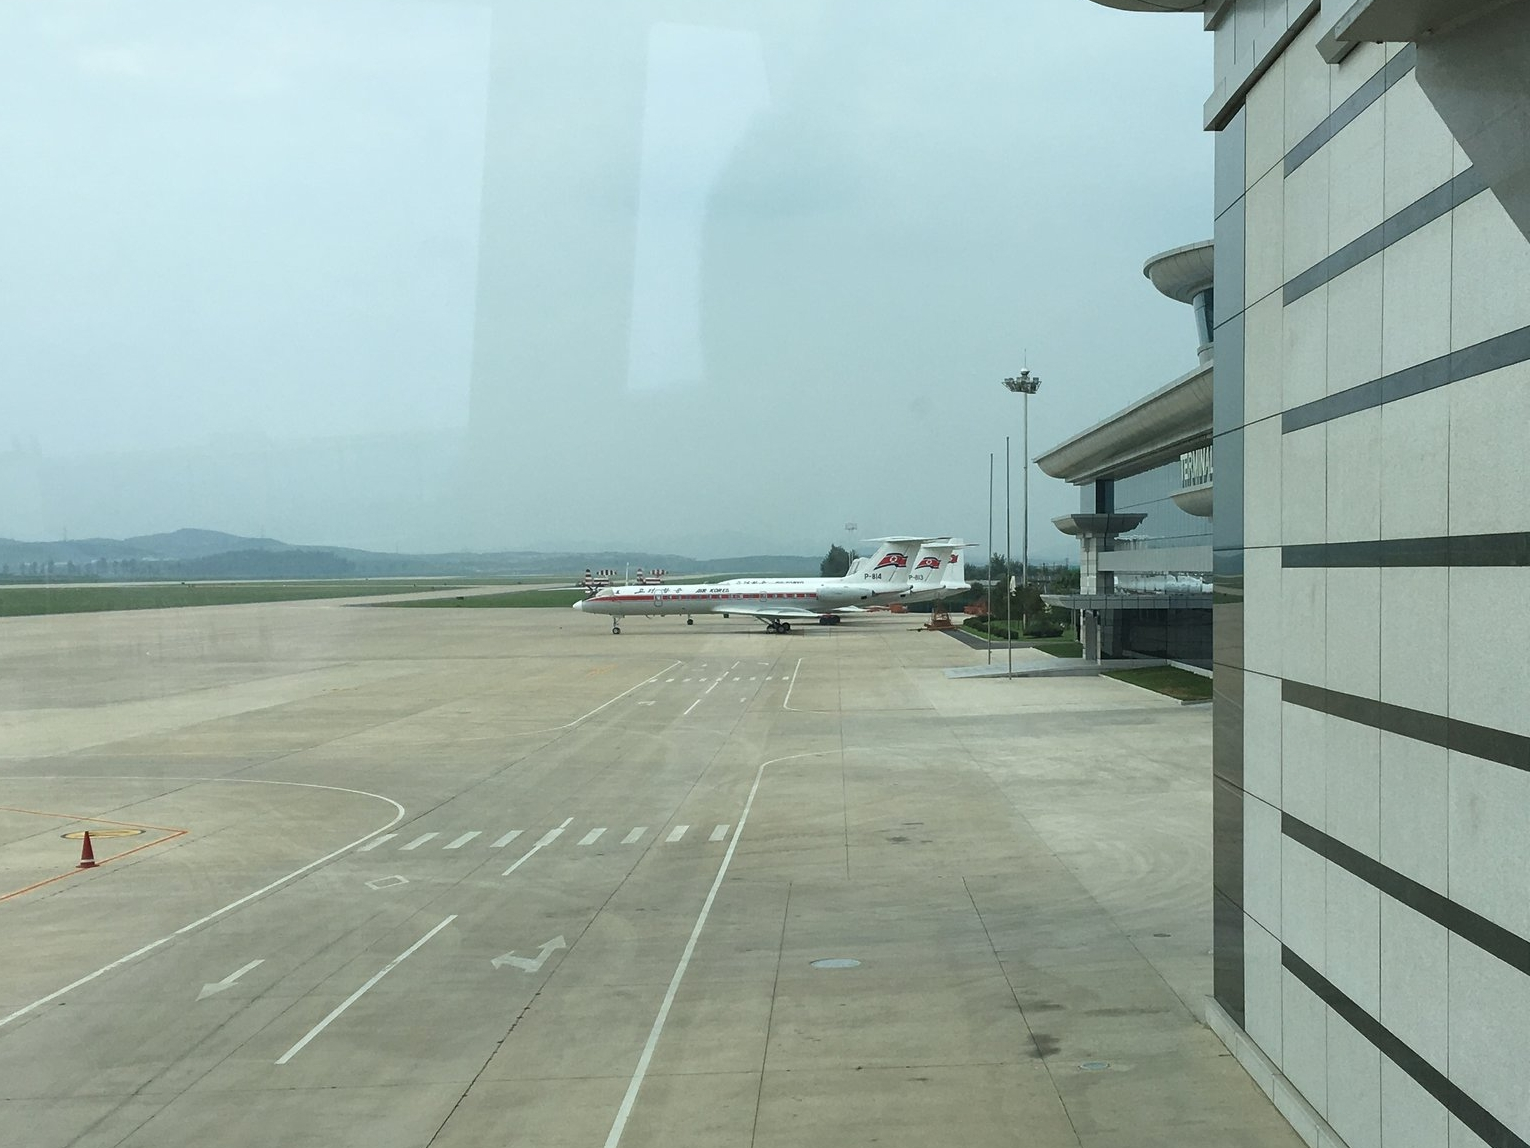 Other planes parked at Pyongyang Sunan International Airport